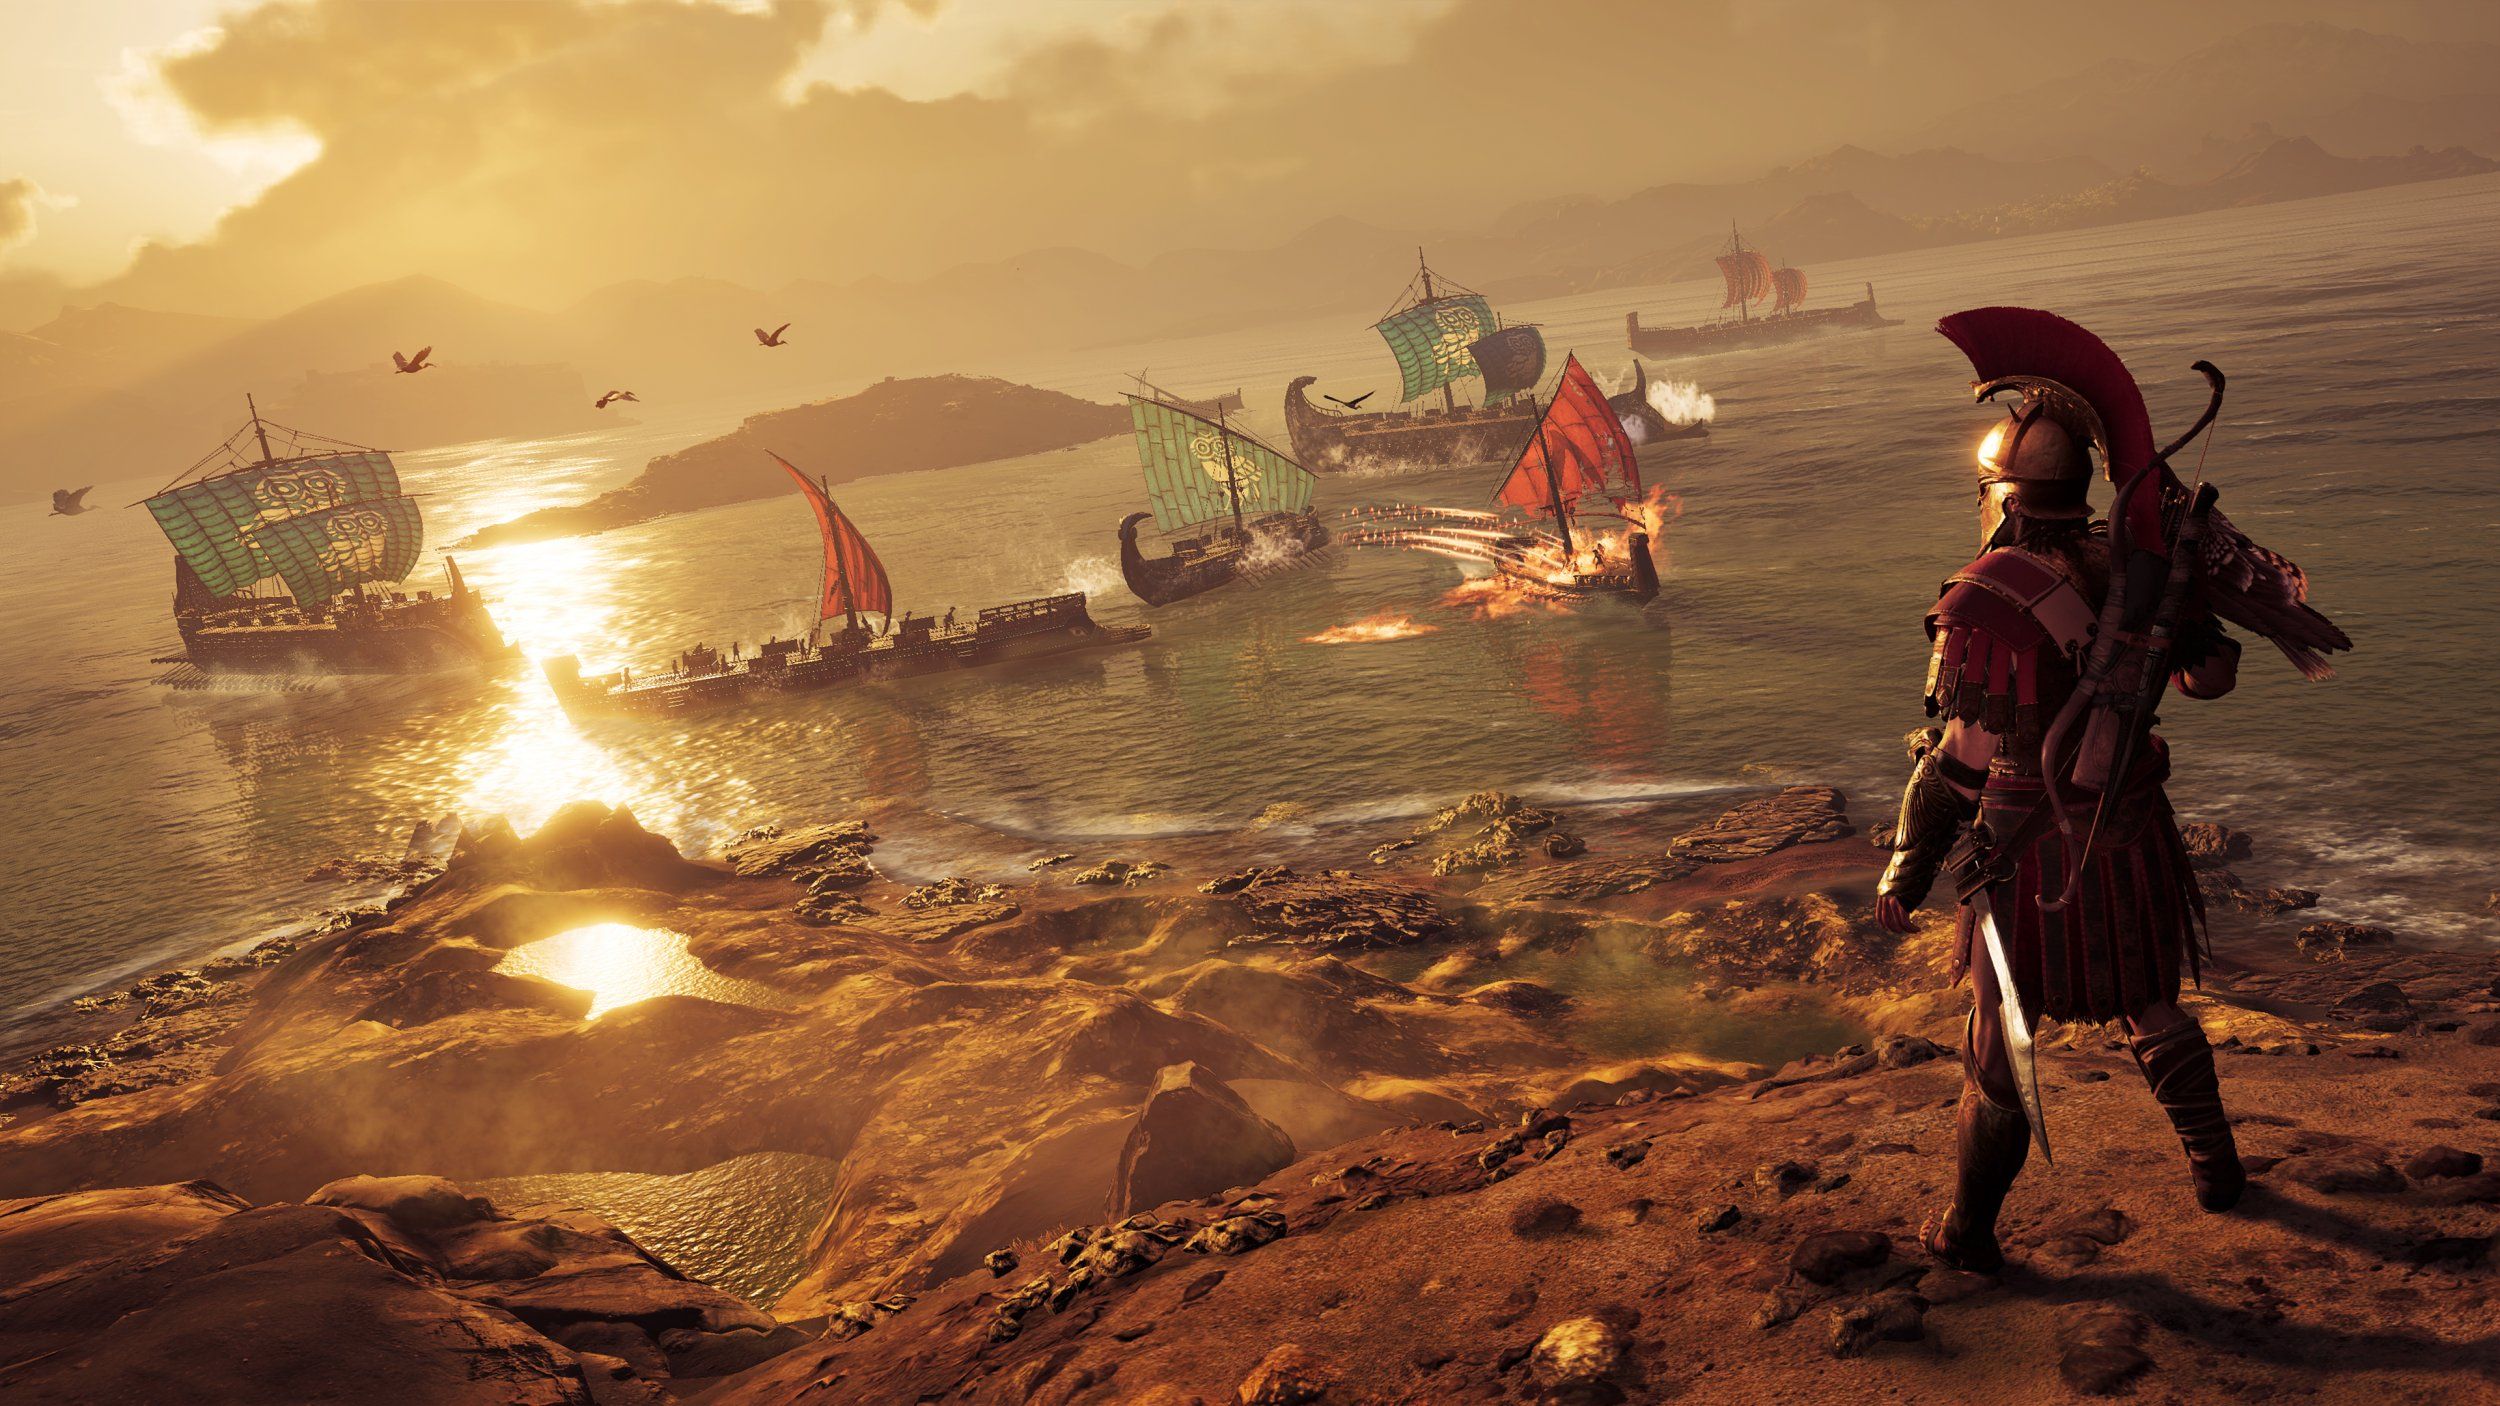 Assassin's Creed Odyssey' Update 1 14 Adds New Game+ - Patch Notes